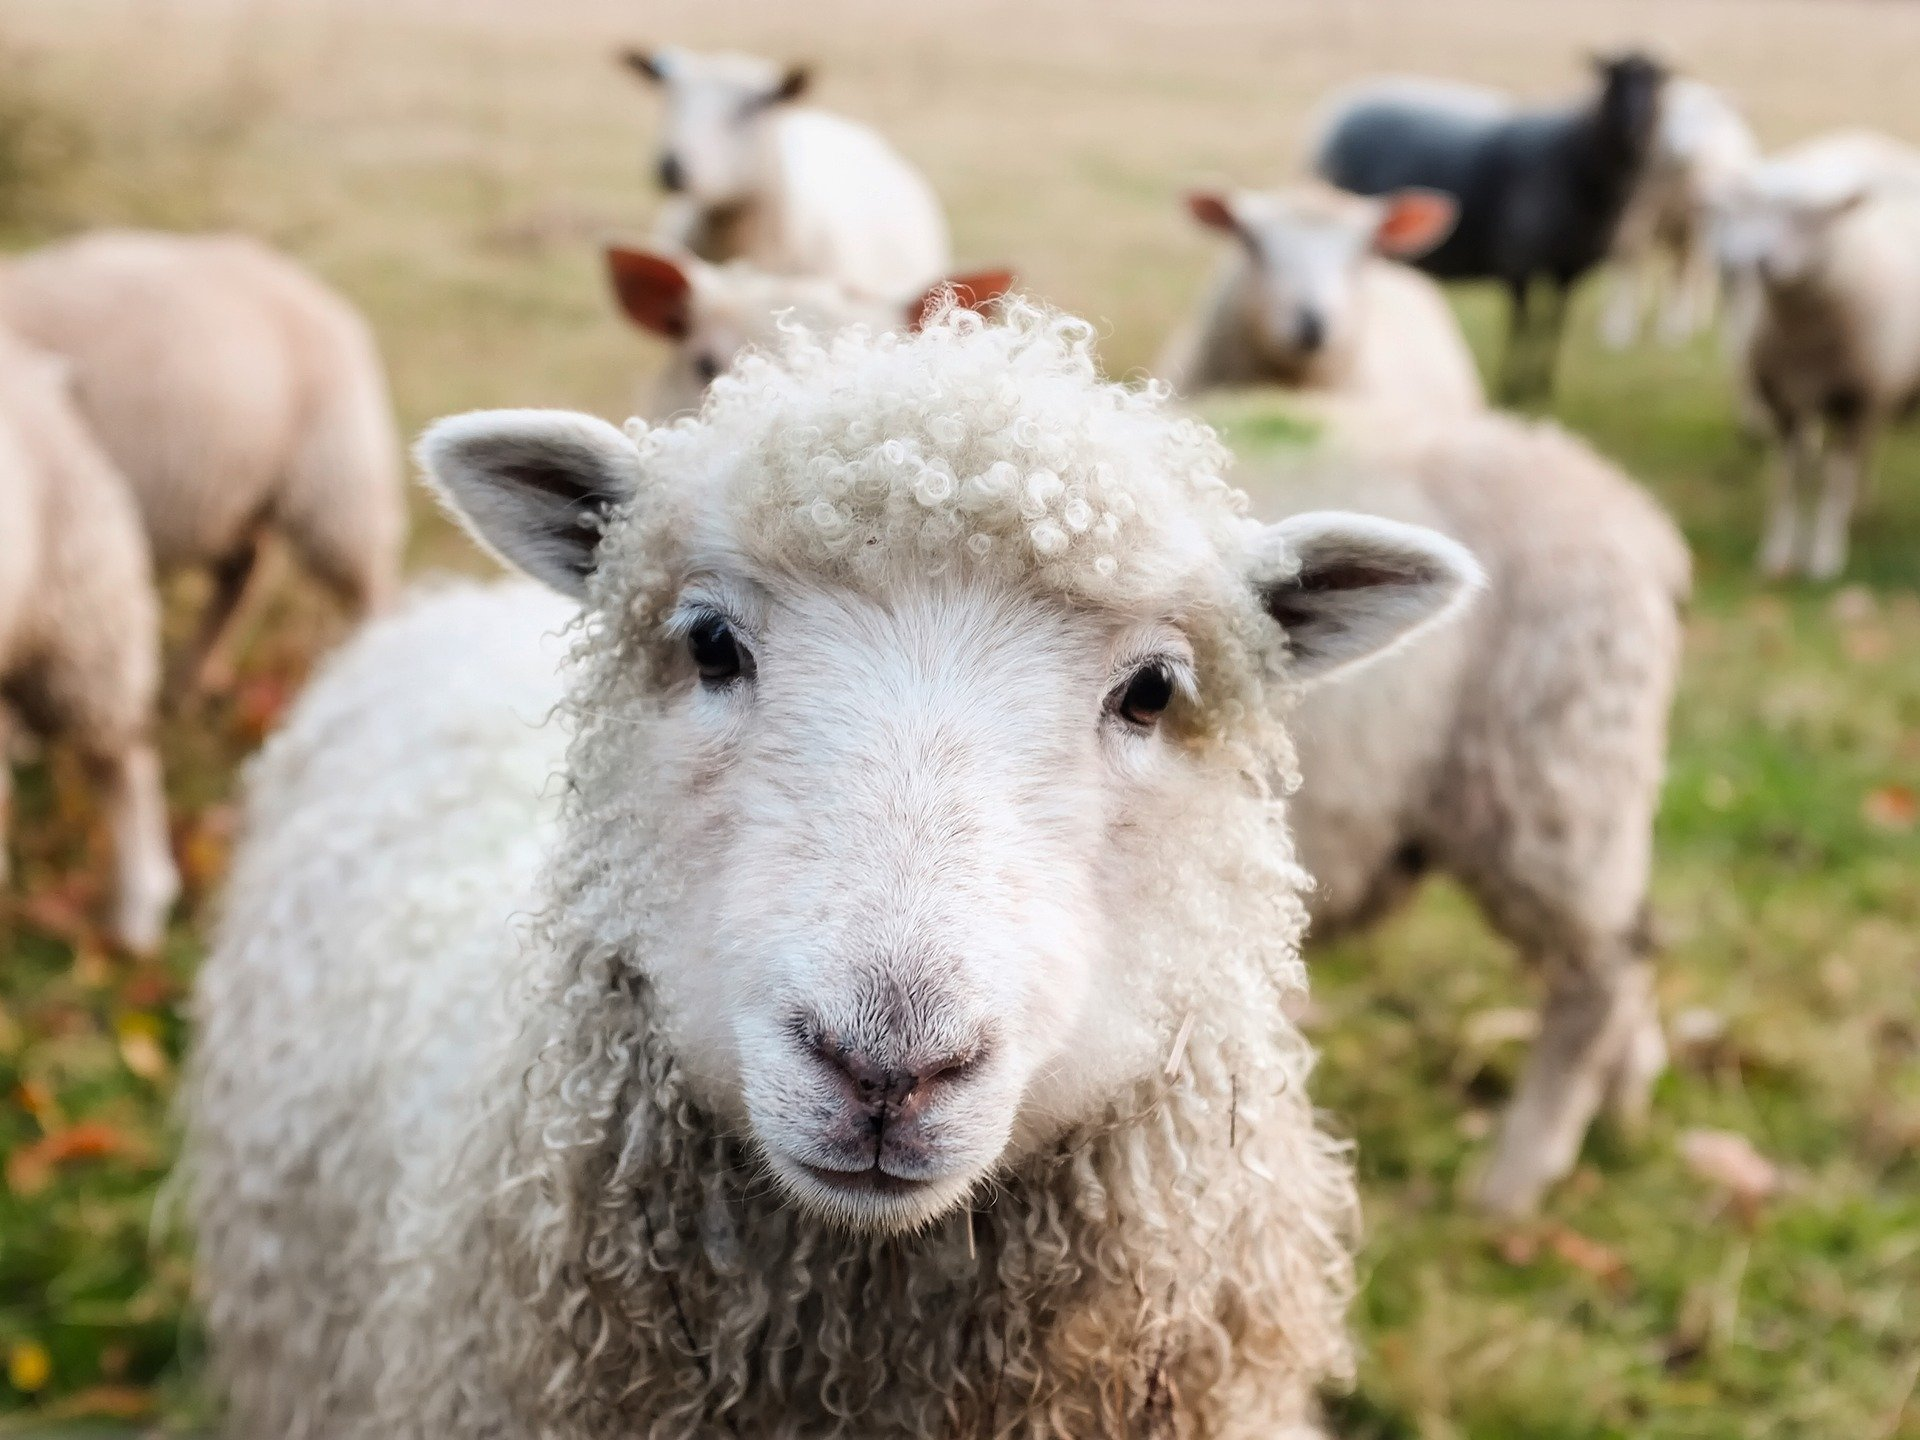 One sheep killed and another seriously injured in livestock attack